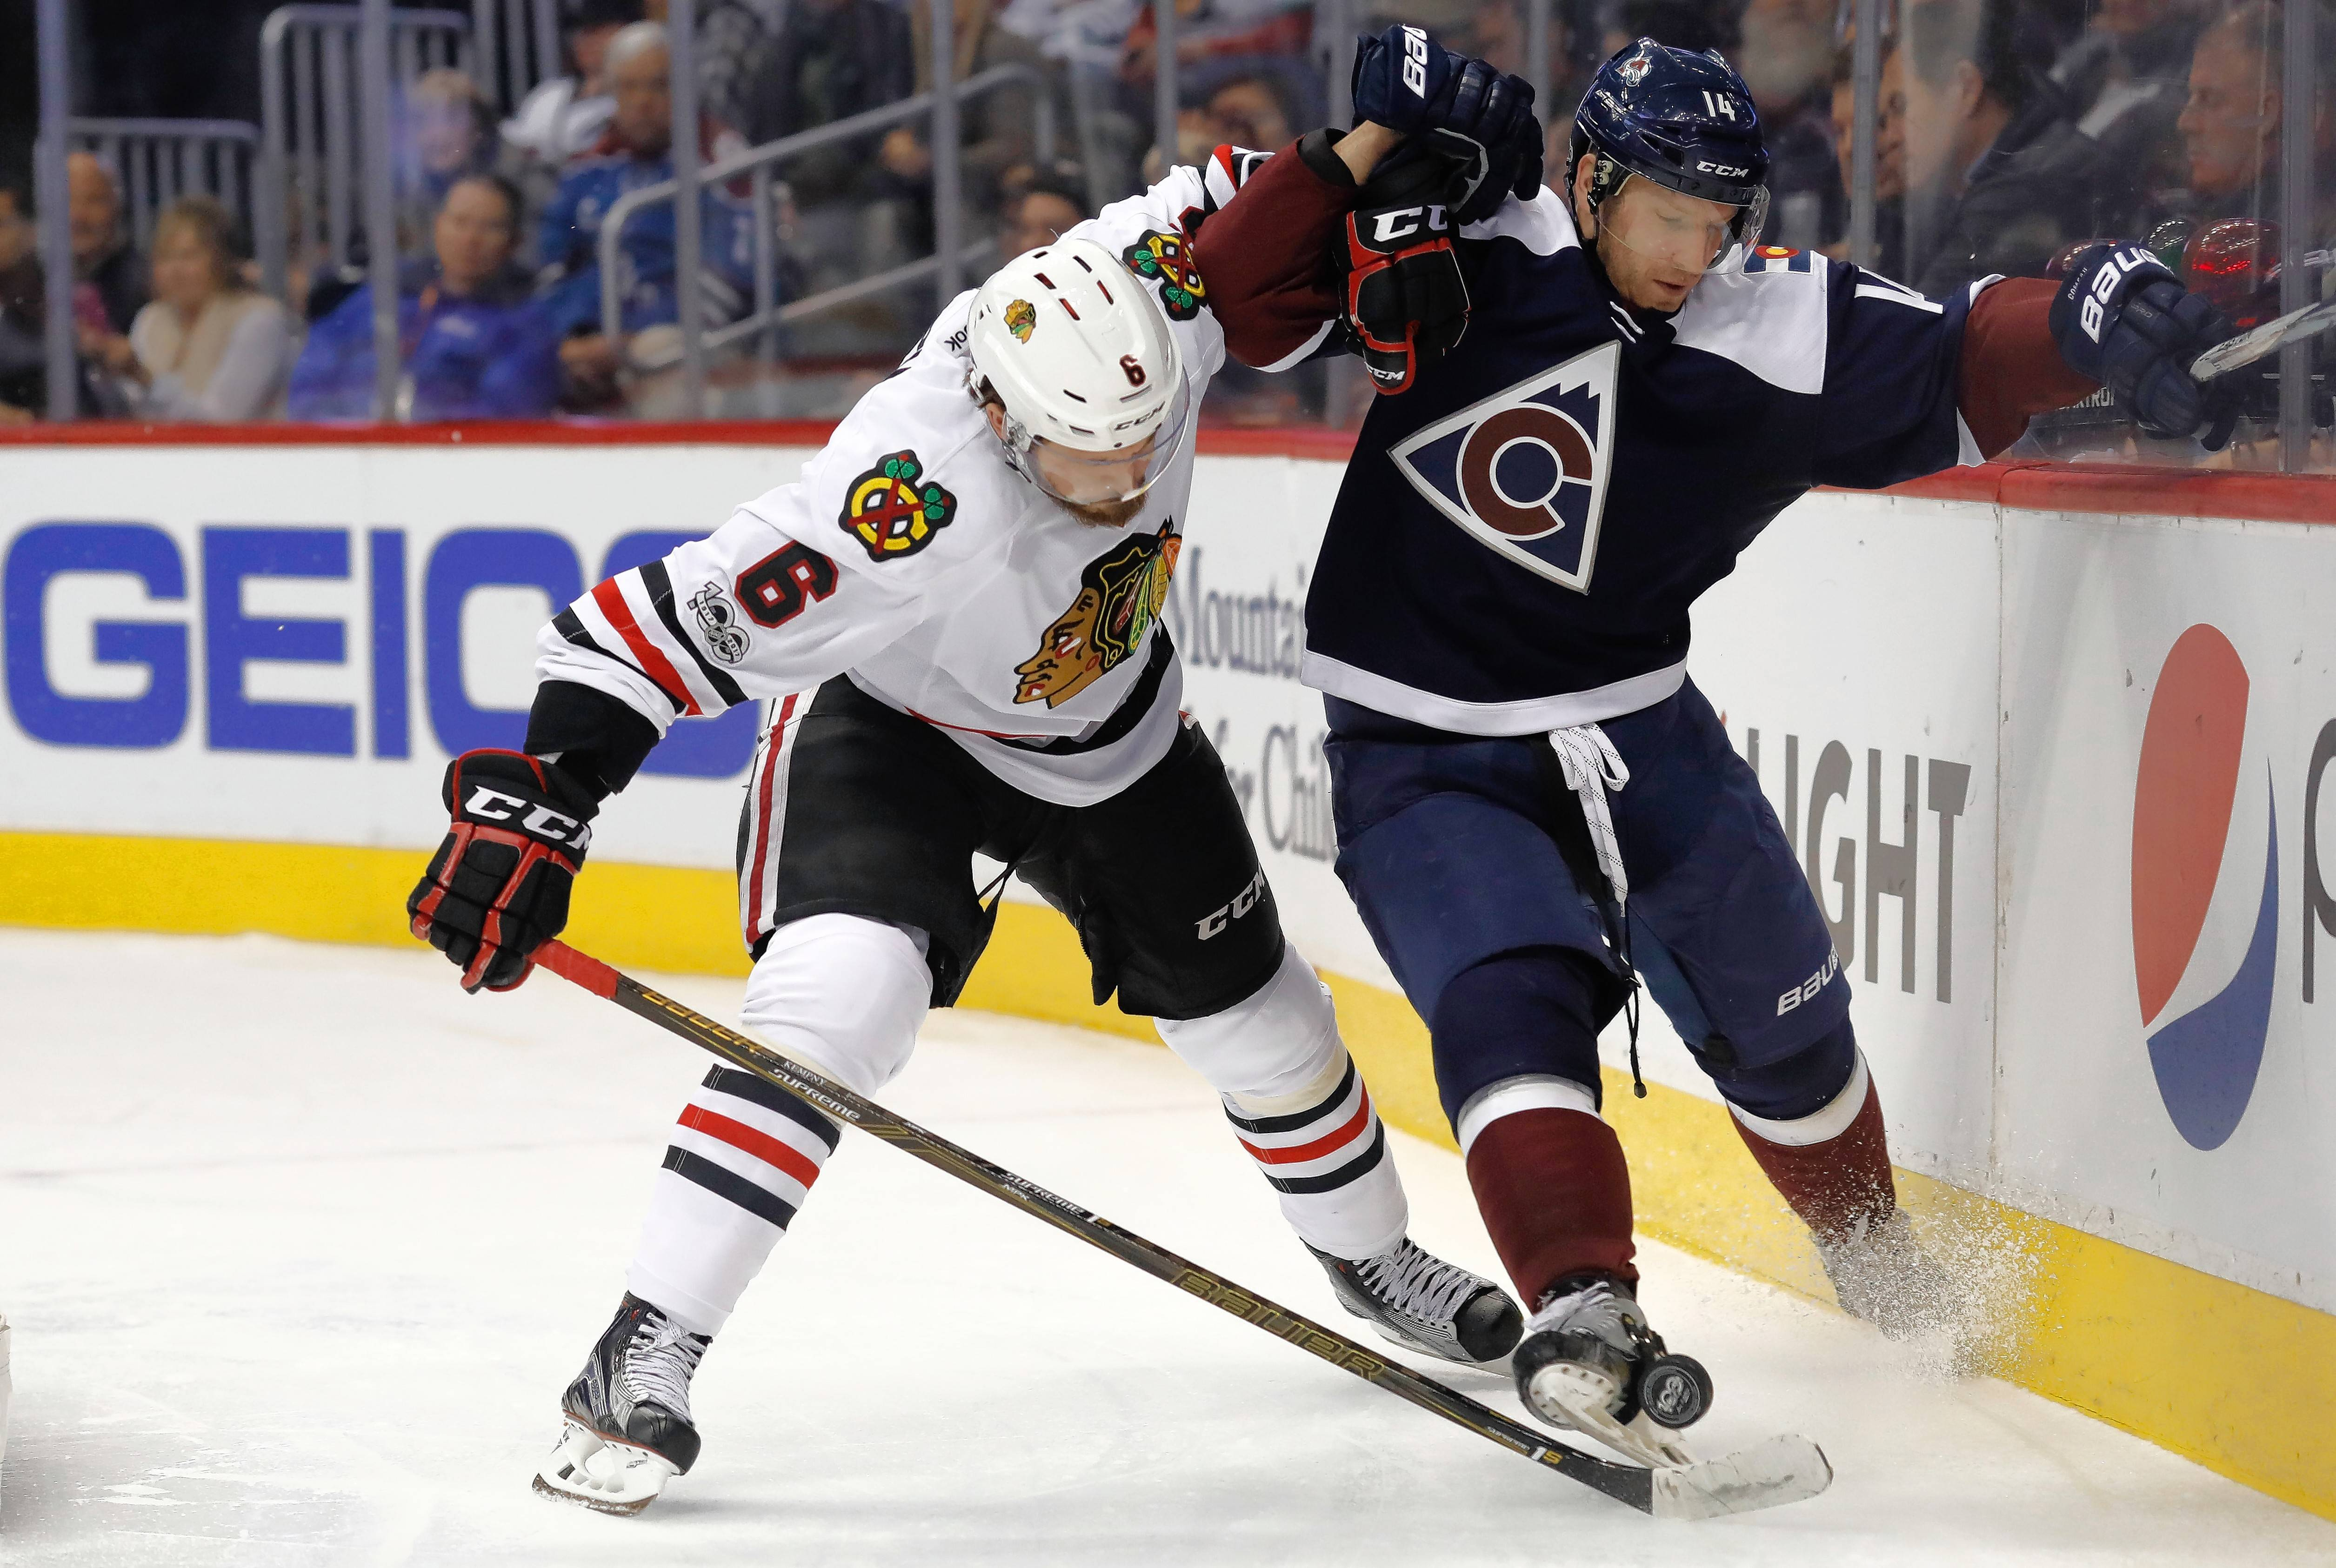 Chicago Blackhawks defenseman Michal Kempny struggled Sunday against the Canucks, letting poor play and poor decision-making lead to 2 Vancouver goals in the third period to tie the game.